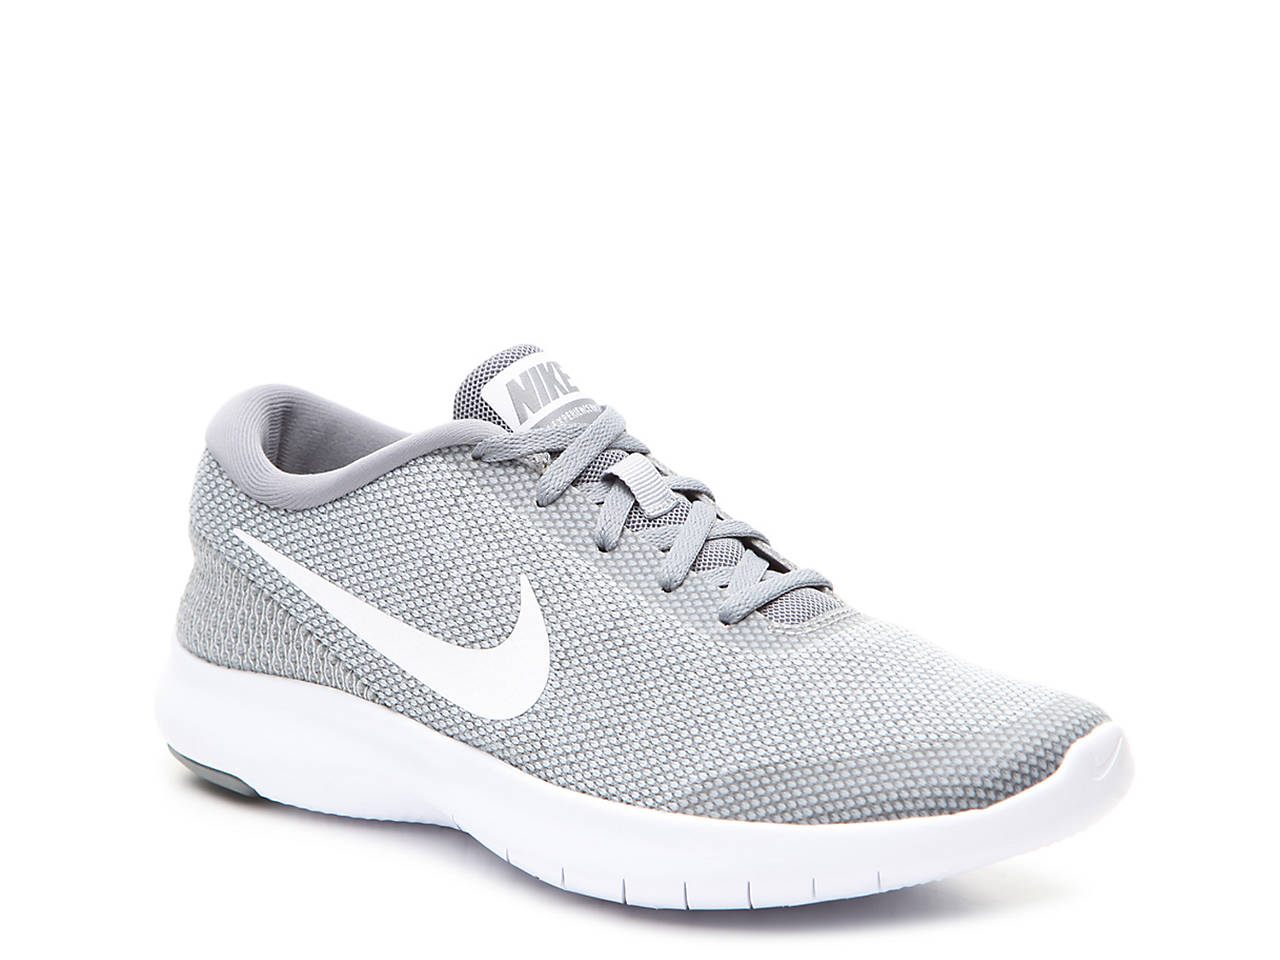 separation shoes 1c2e1 48407 Nike. Flex Experience RN 7 Lightweight Running Shoe - Women s